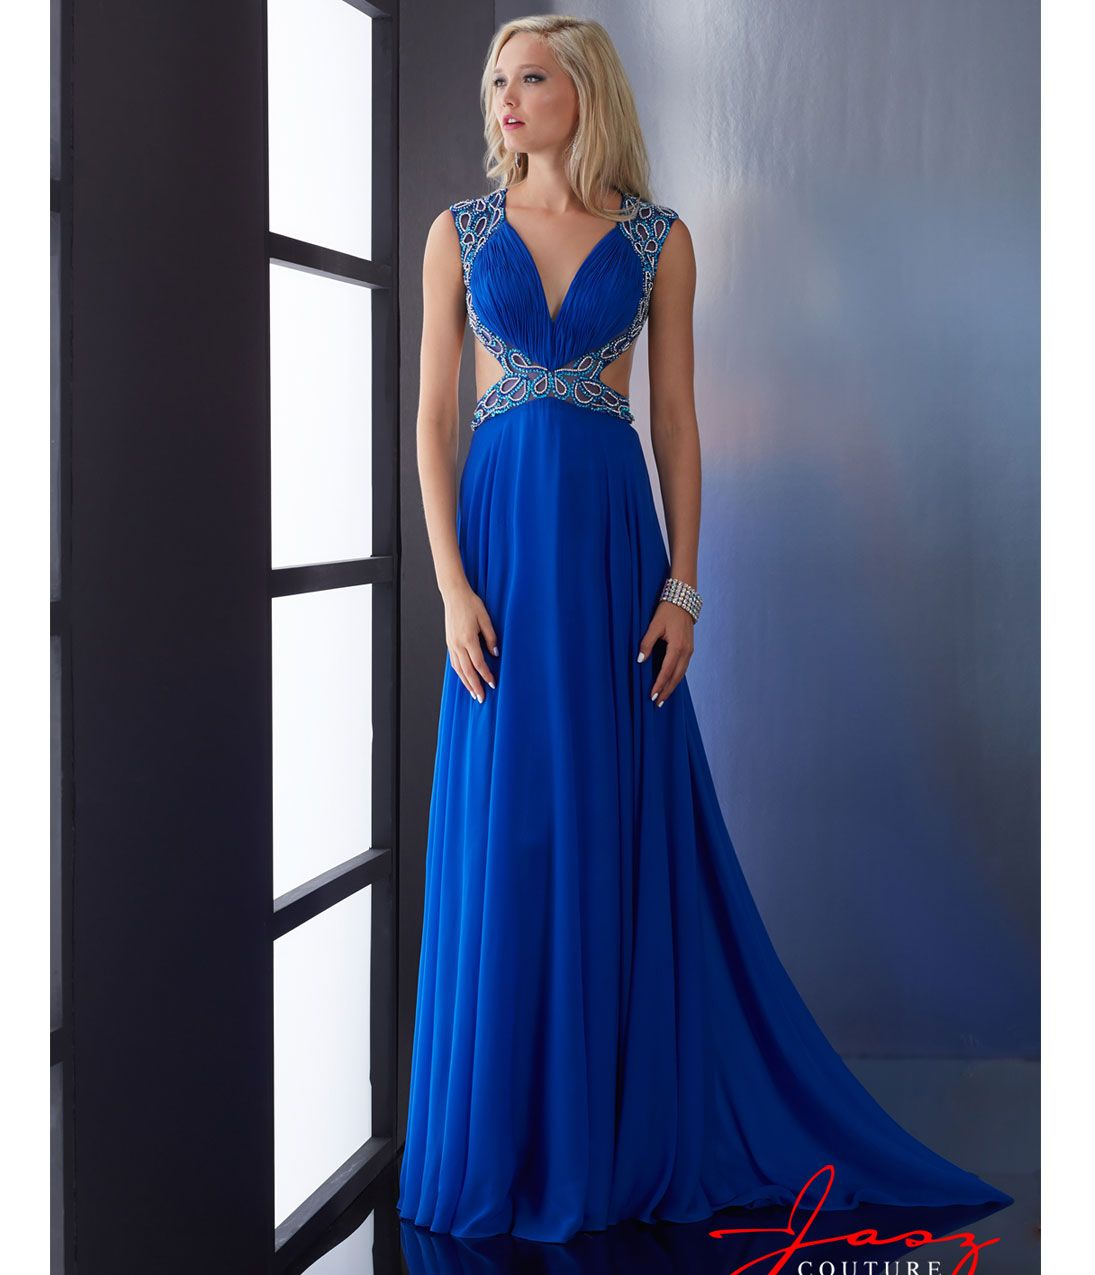 Discount Couture Dresses: Lovely Open Back Gown By Jasz Couture